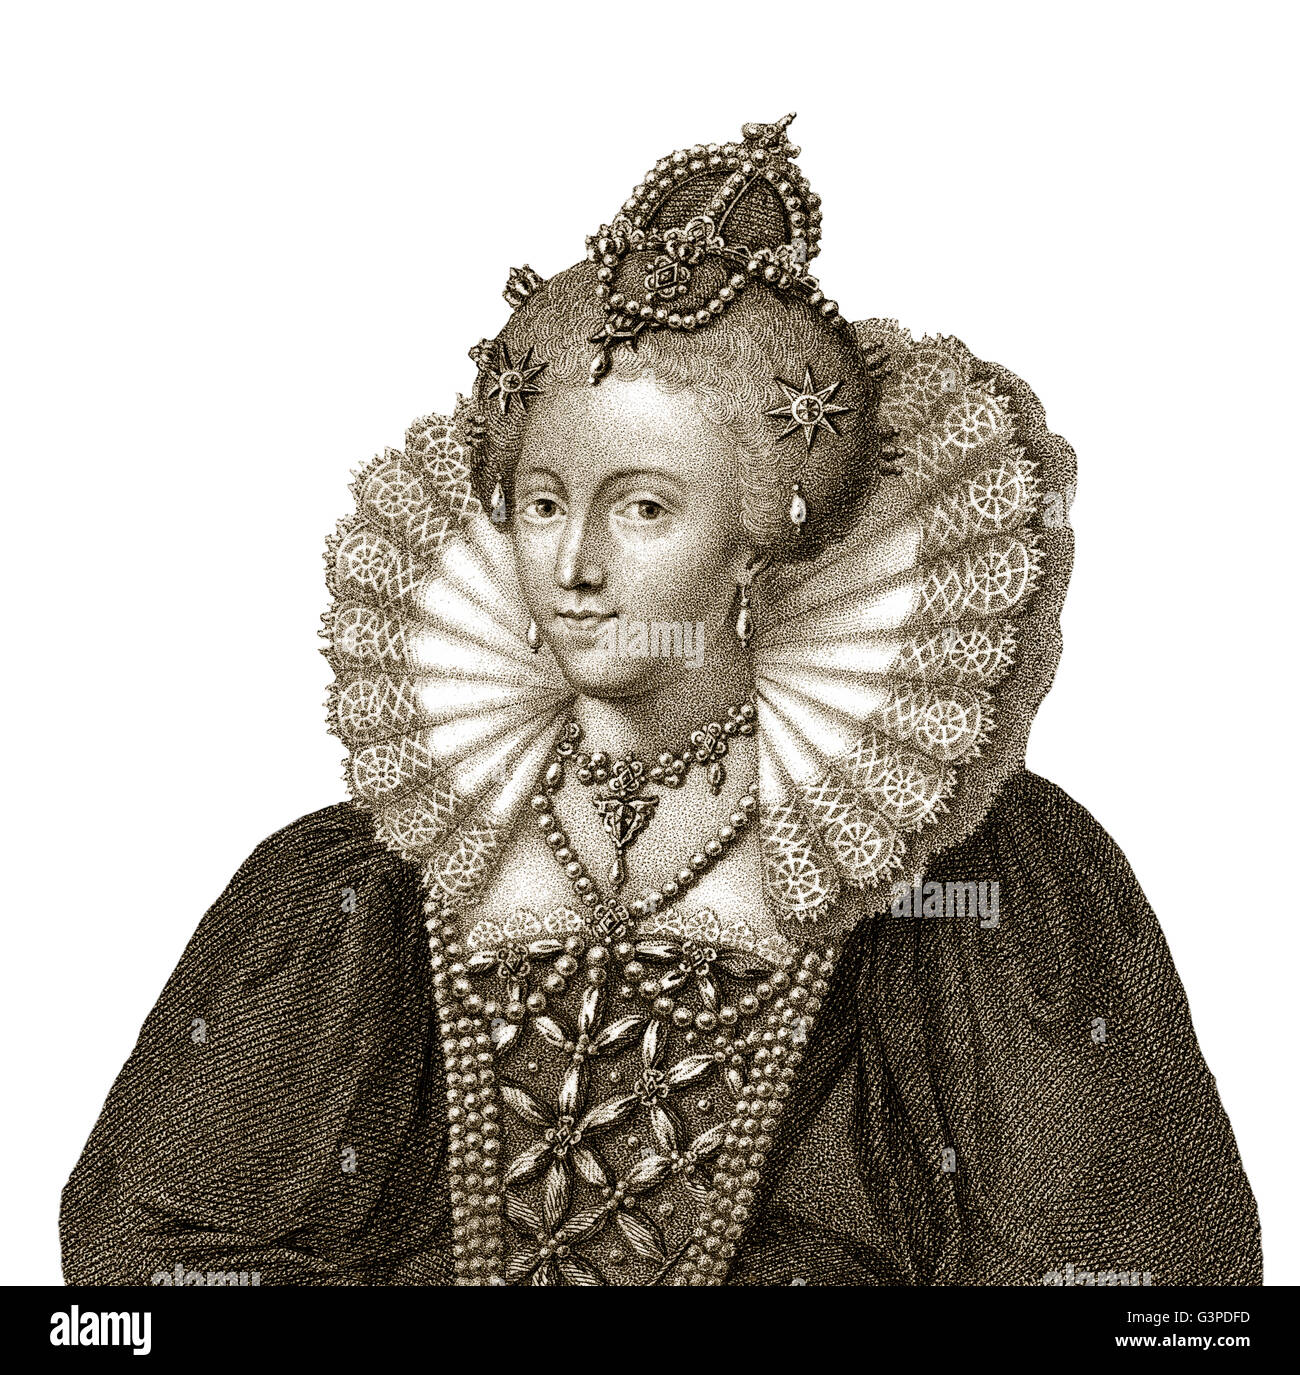 influences of queen elizabeth i 1558 1603 (1558-1603) elizabeth has traditionally been seen as one of england's greatest monarchs - if not in fact the greatest her reign witnessed widespread increase had she done so, civil war (between the protestant supporters of catherine grey and the catholic supporters of mary, queen of scots) might well have followed.